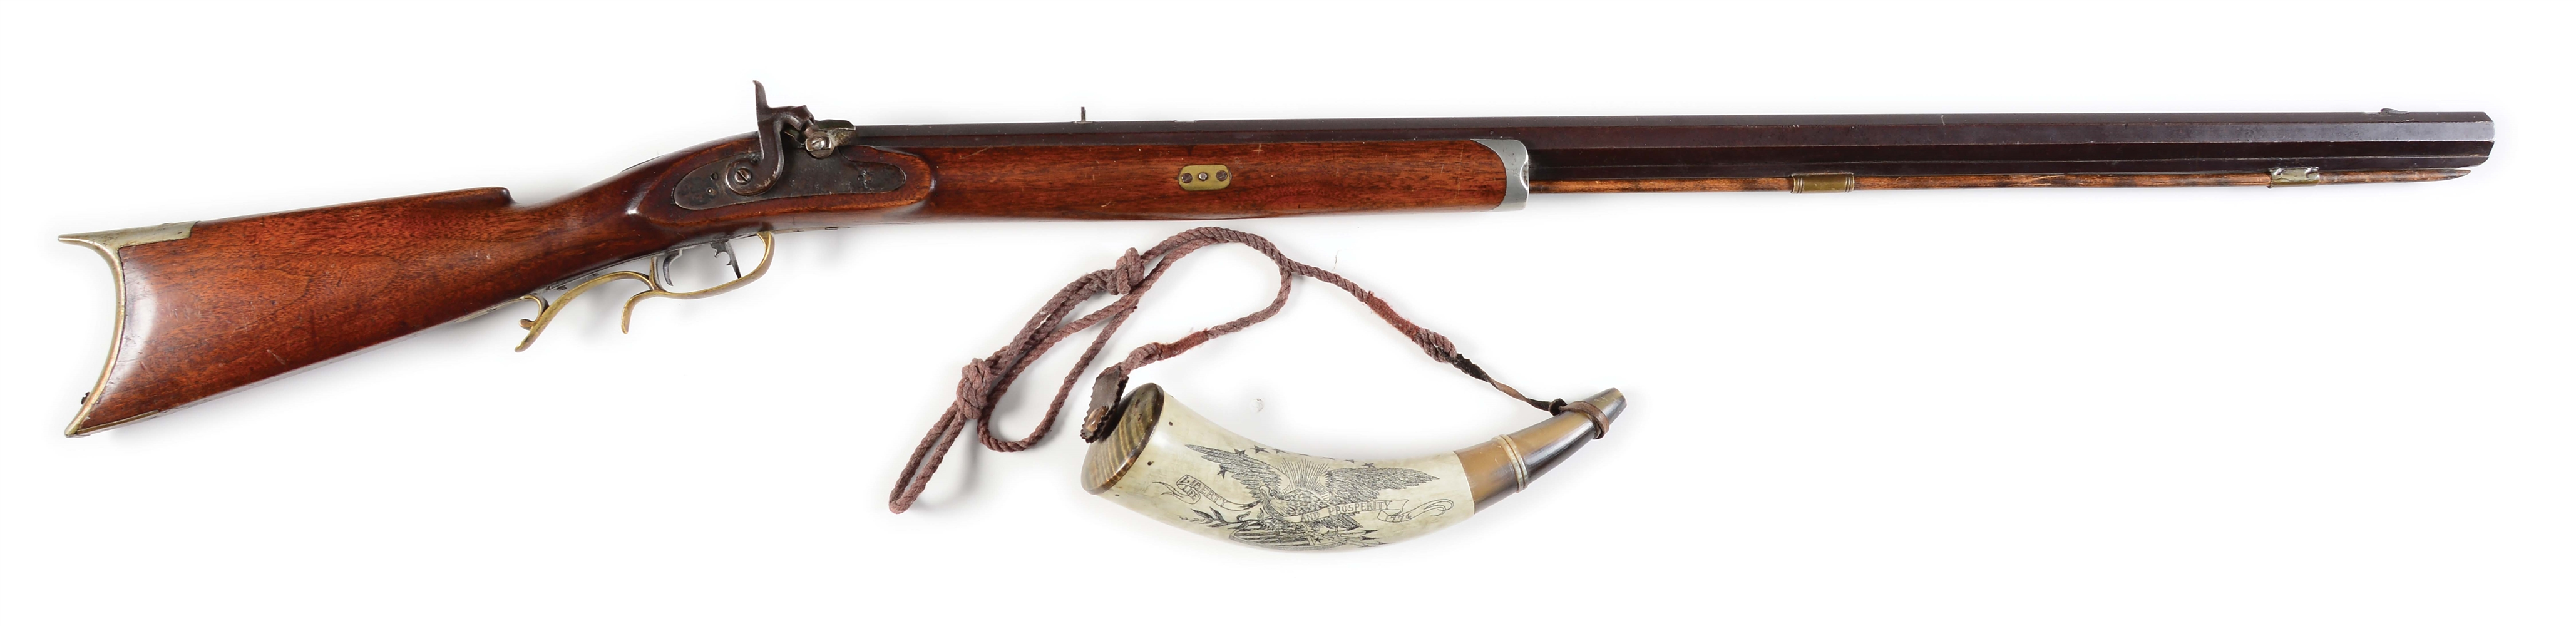 (A) S.J. HESTON .36 CALIBER PERCUSSION RIFLE AND HORN.